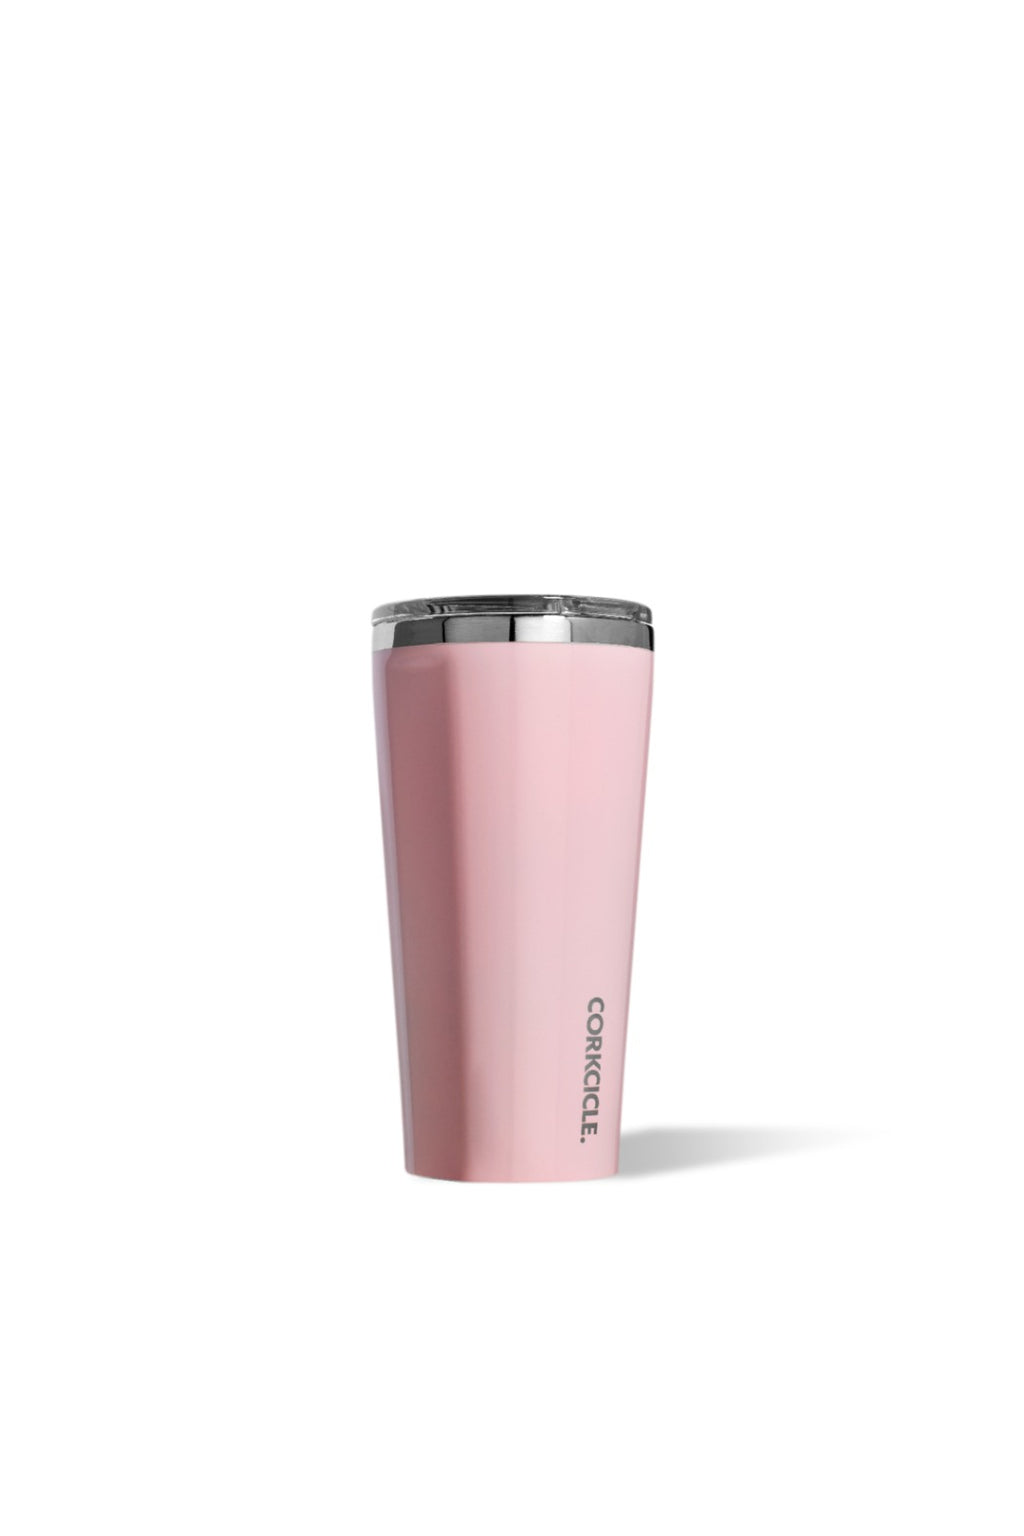 Corkcicle 16 oz. Tumbler - Rose Quartz